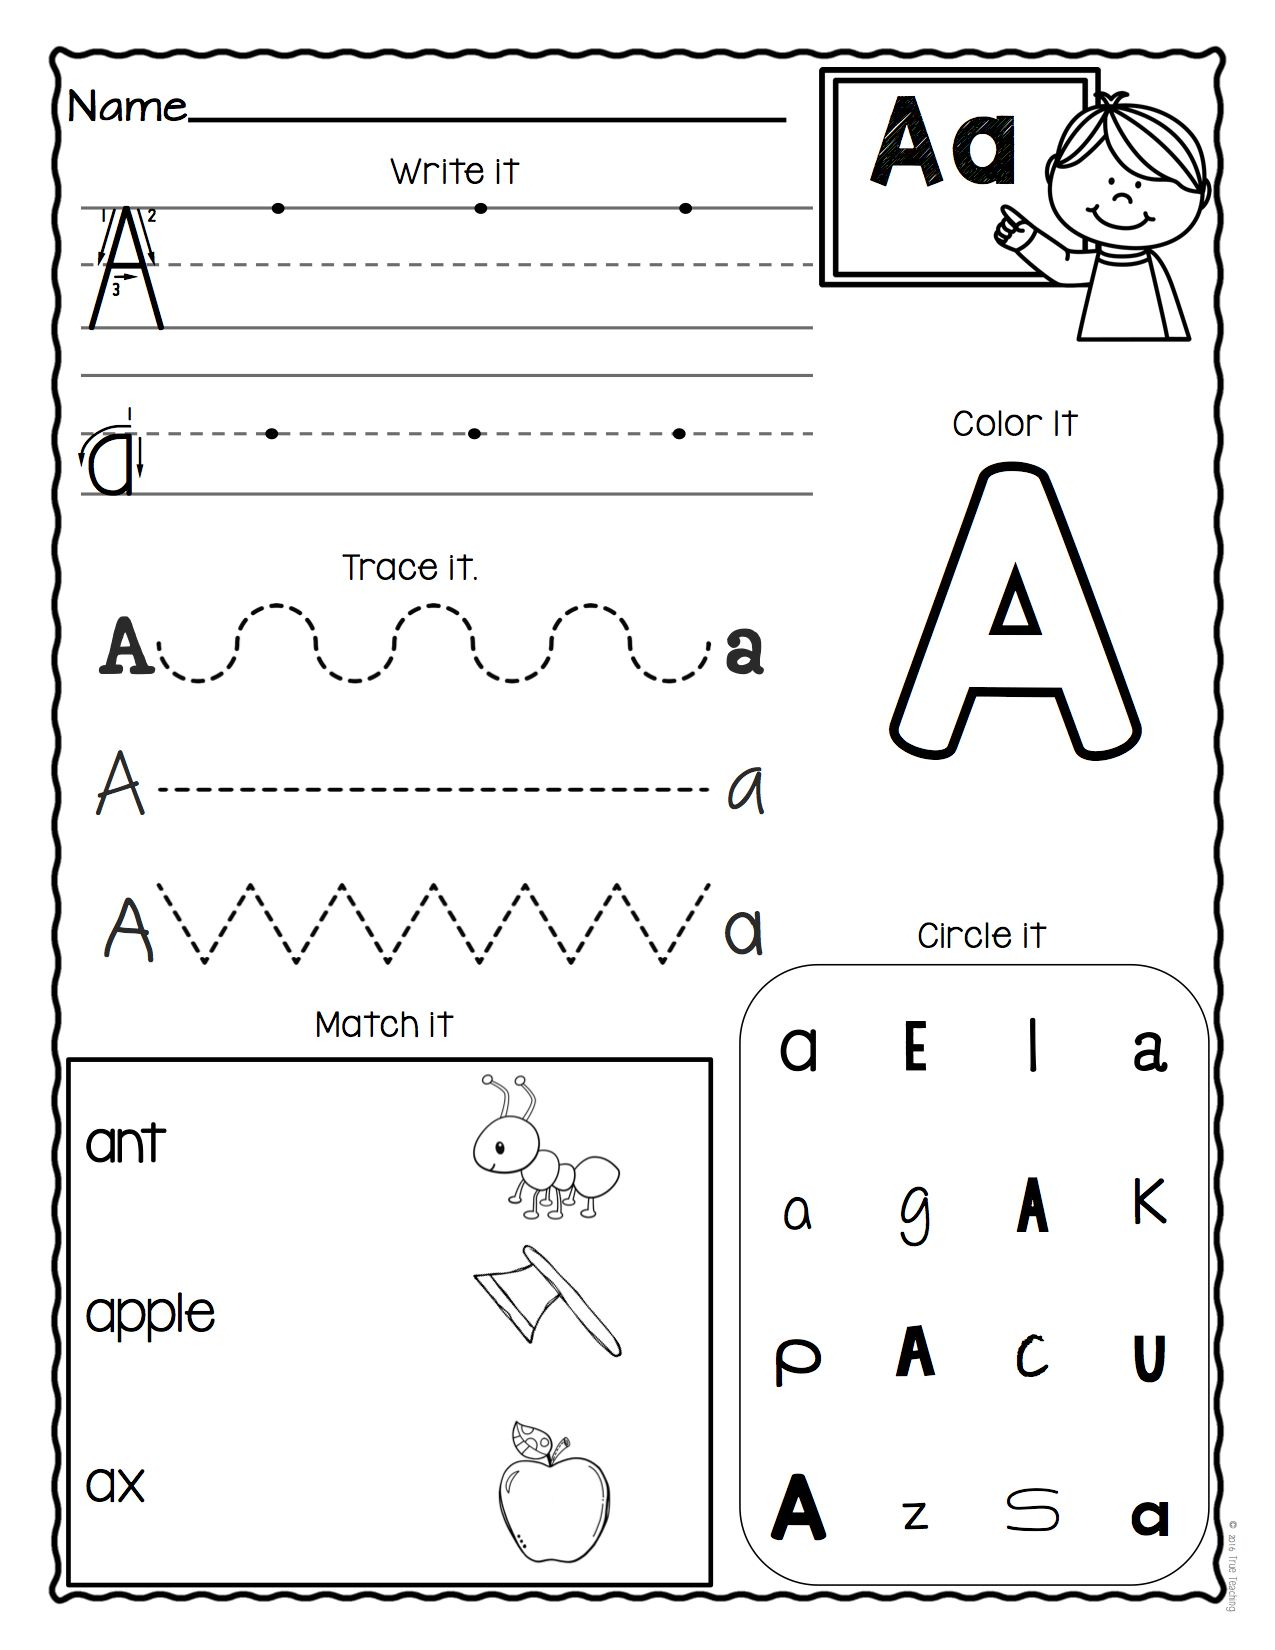 A-Z Letter Worksheets (Set 3) | Alphabet Worksheets intended for A Letter Worksheets